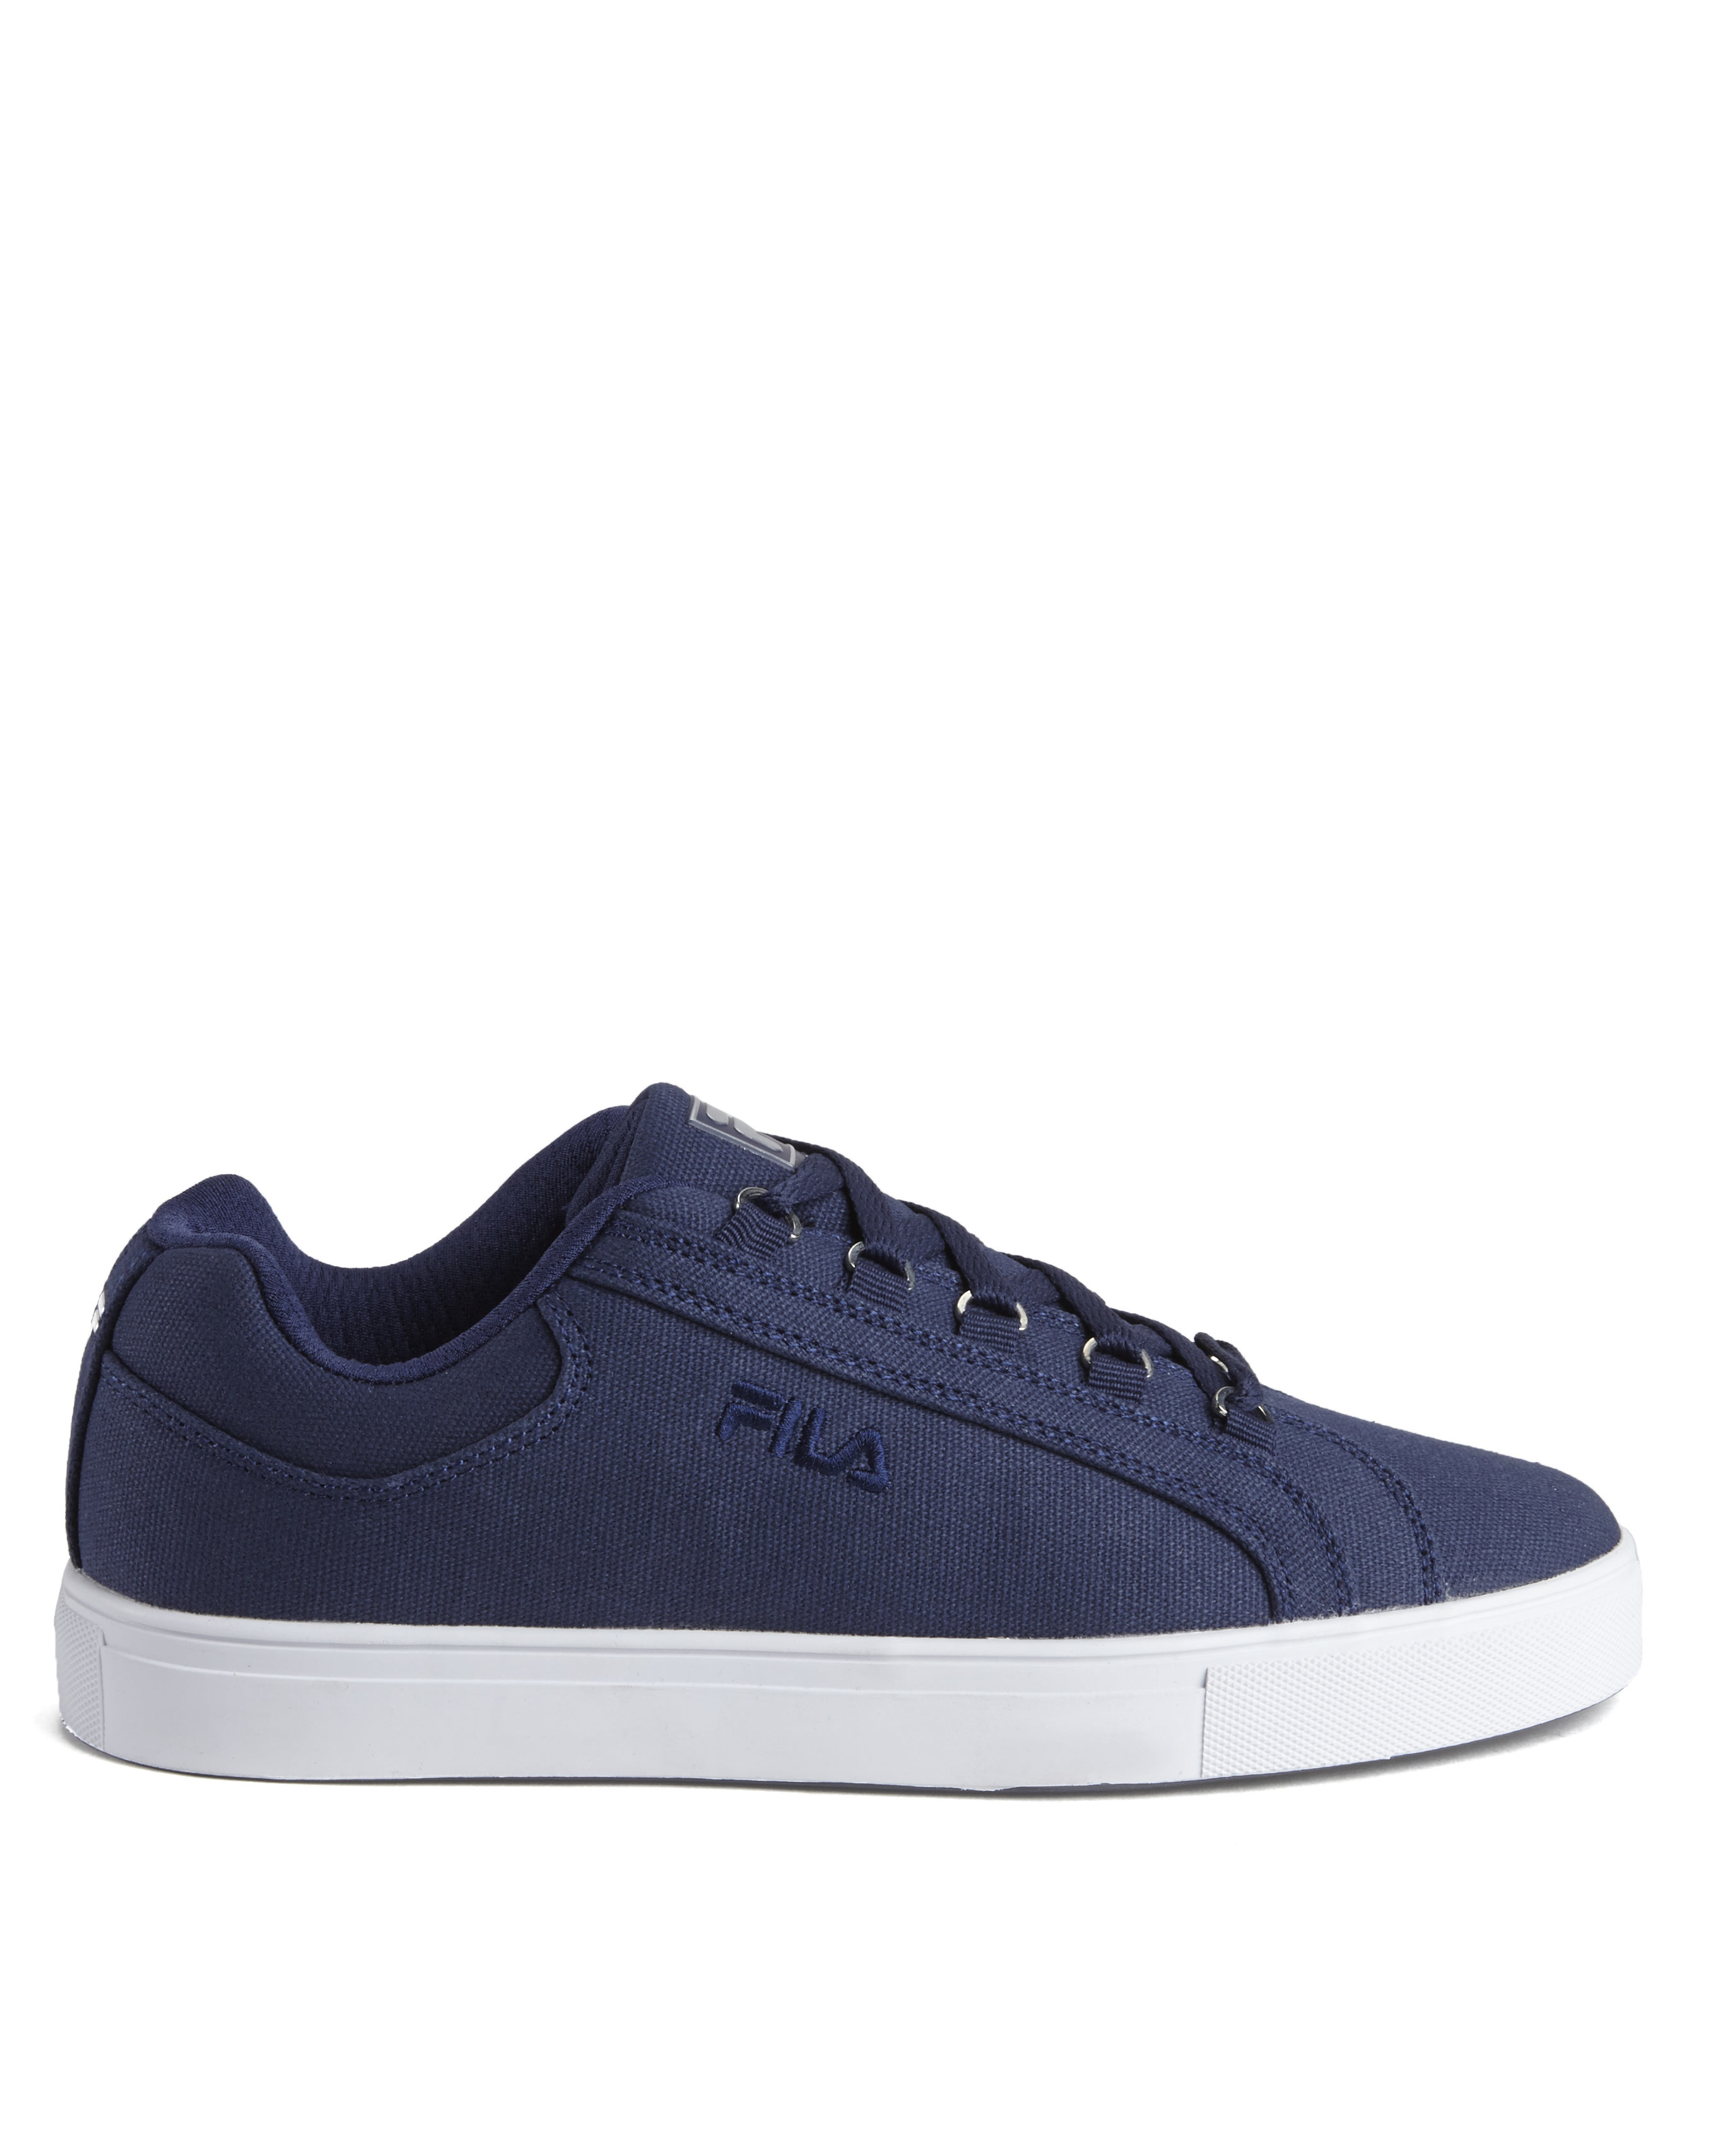 Fila Navy Oxidize Low Canvas Sneakers In Blue Lyst